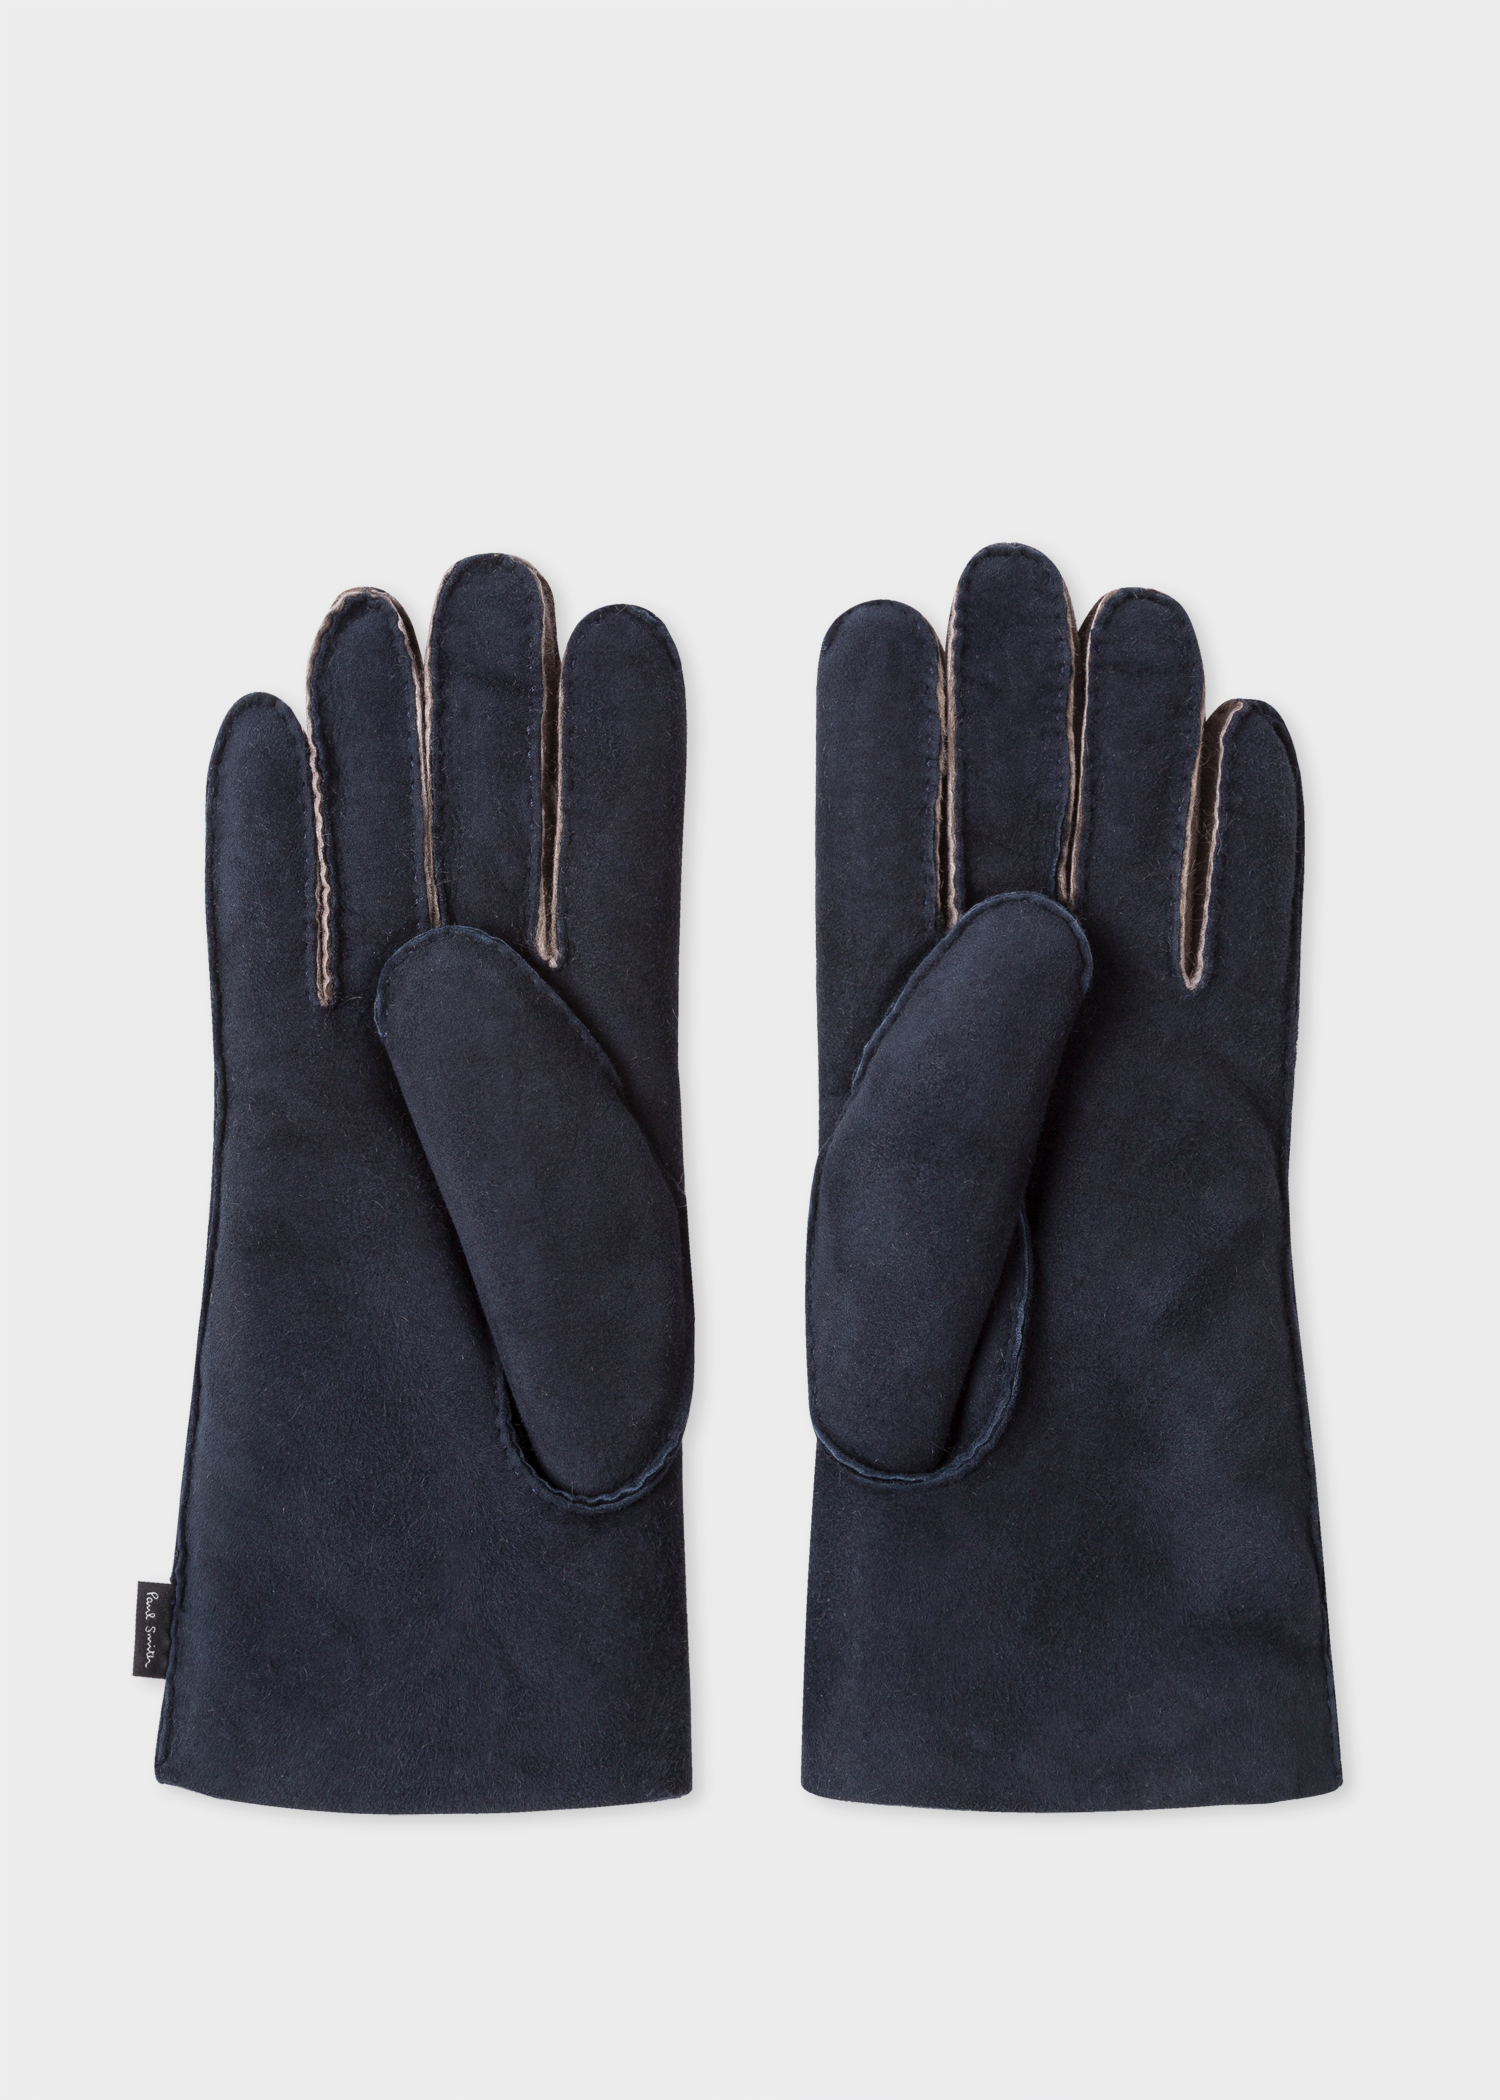 9e48b7c1ca87f Inside view - Men's Navy Suede Sheepskin Gloves Paul Smith